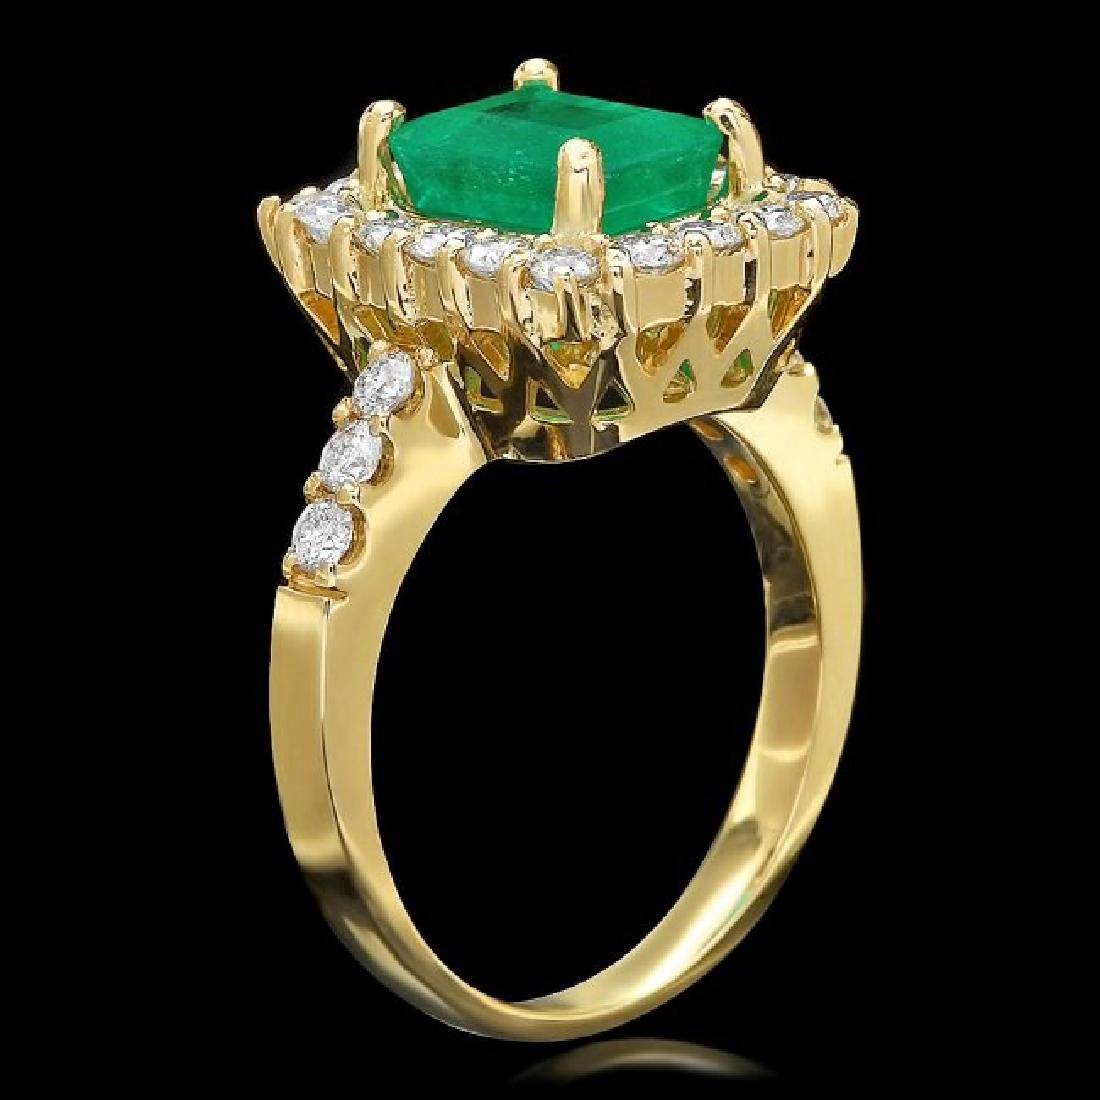 14k Gold 1.90ct Emerald 1.00ct Diamond Ring - 2